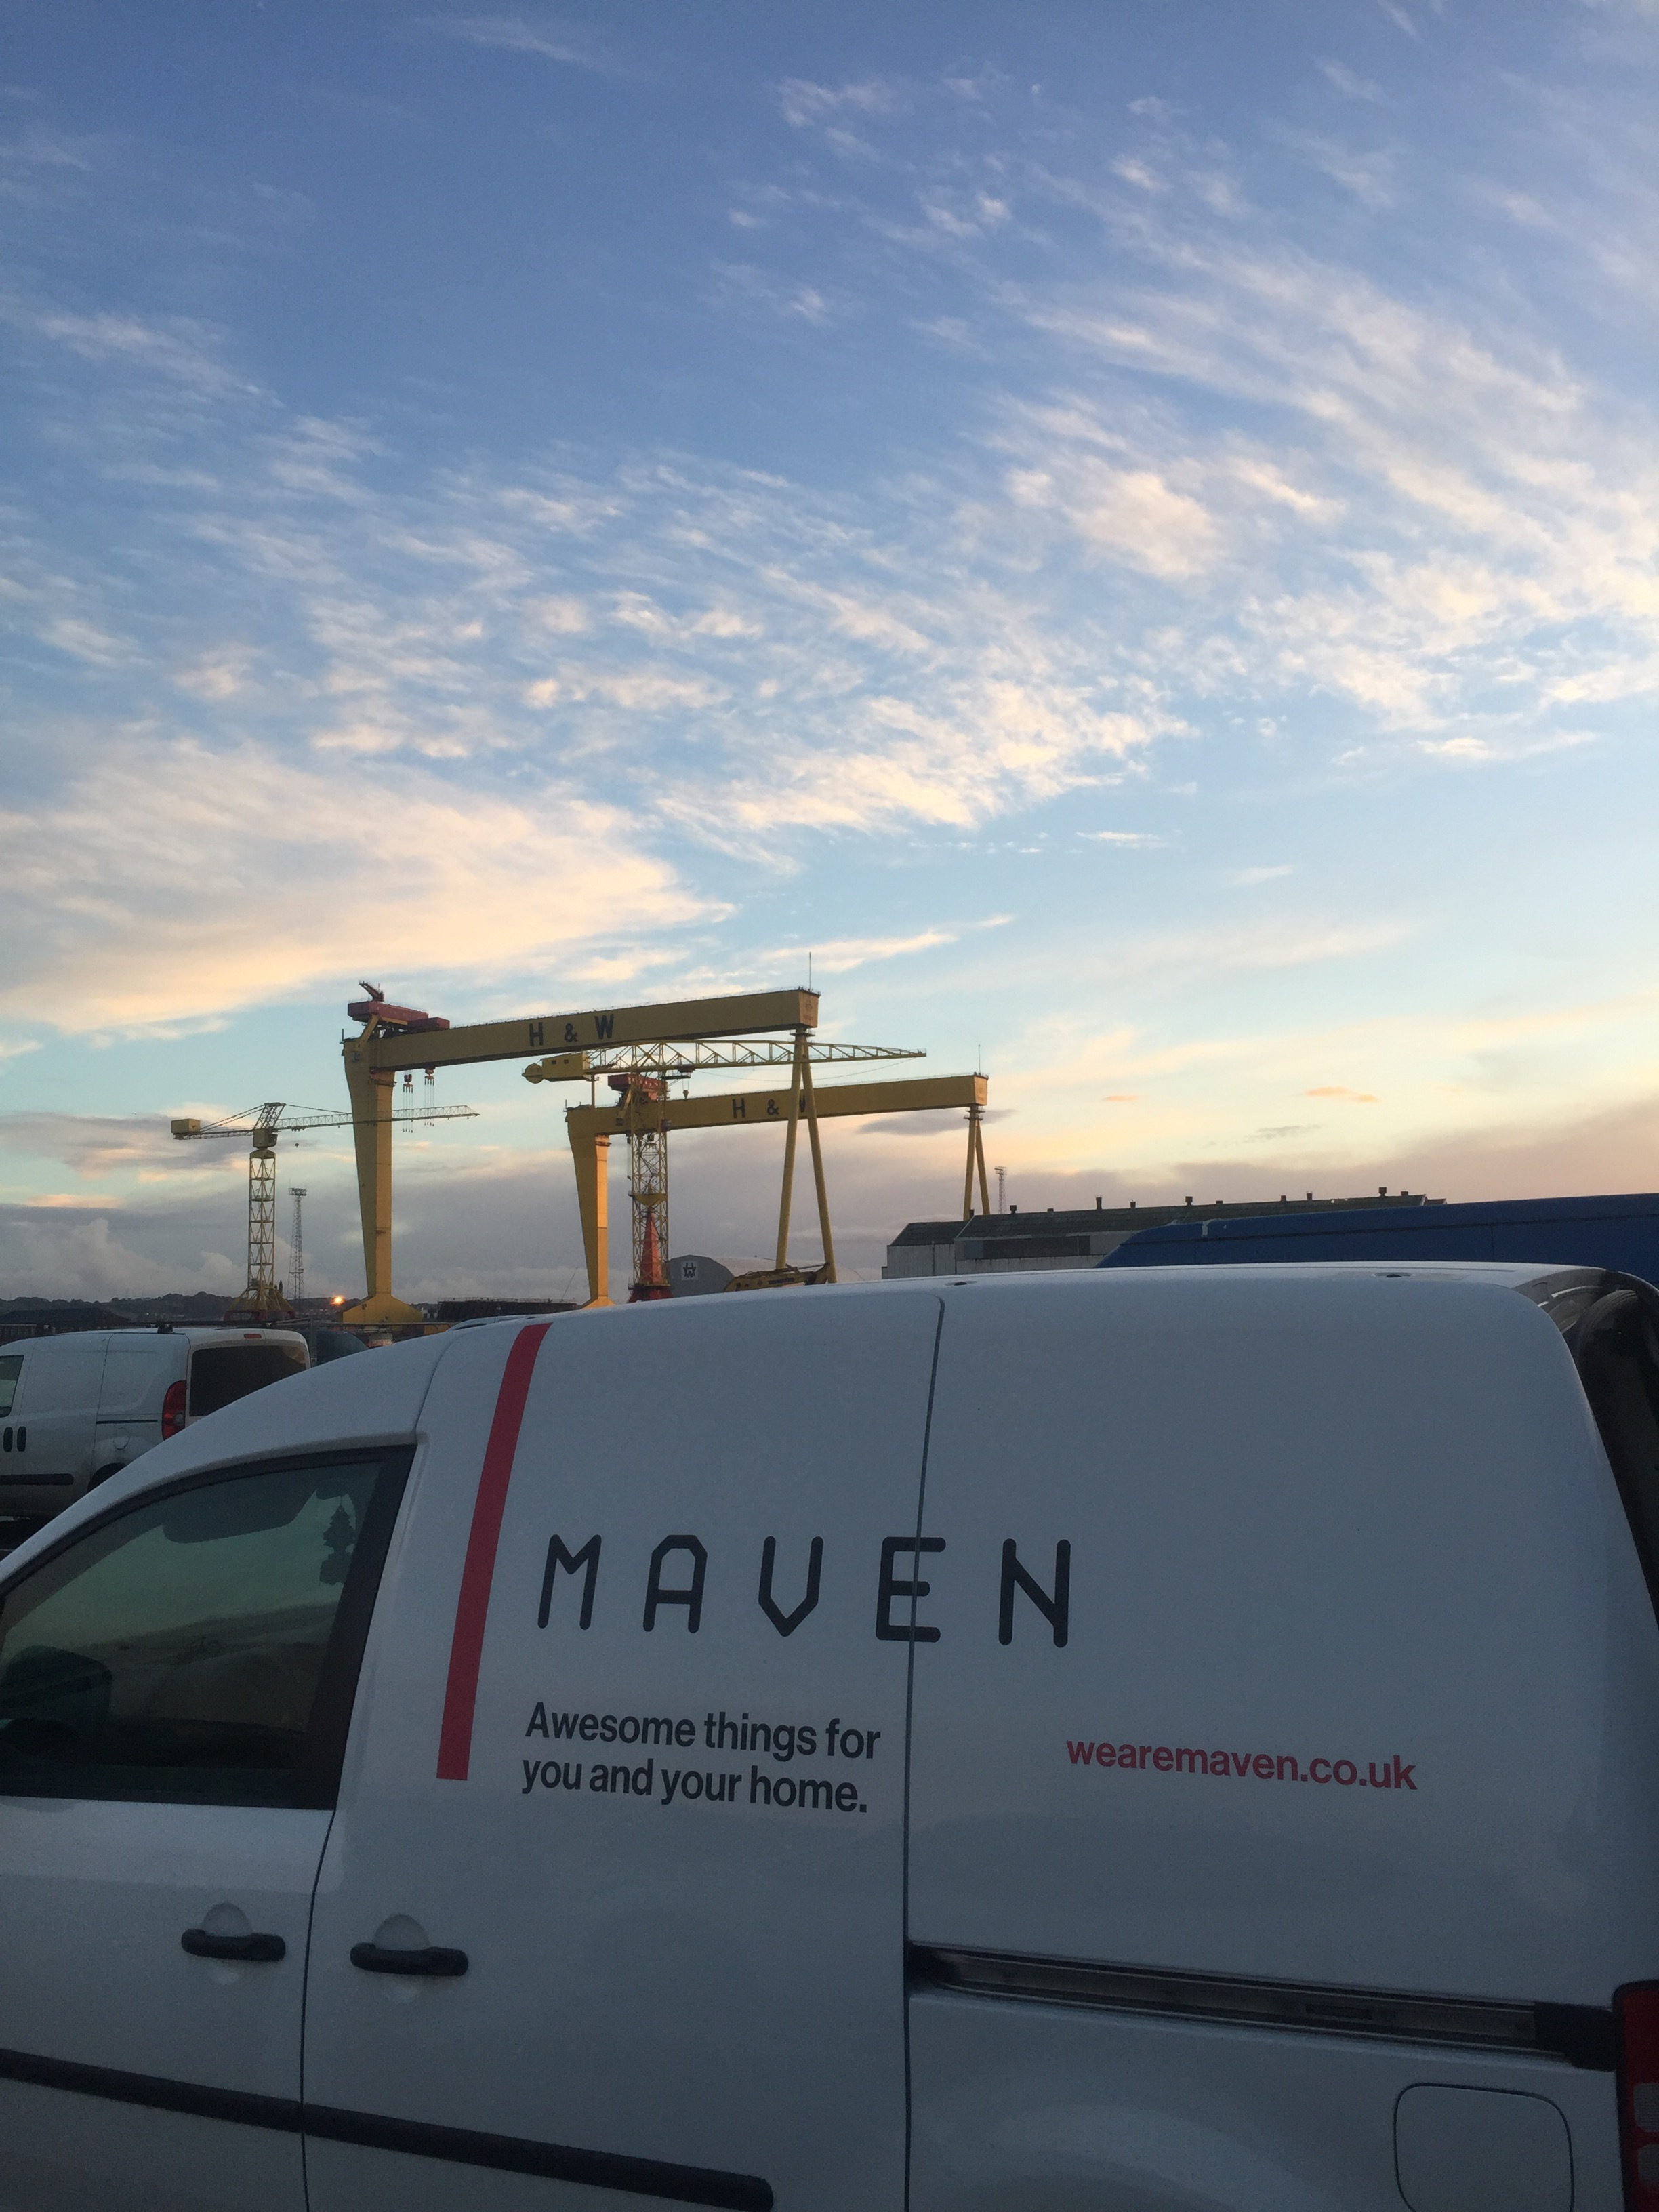 Wouldn't be without our trusty Maven van!